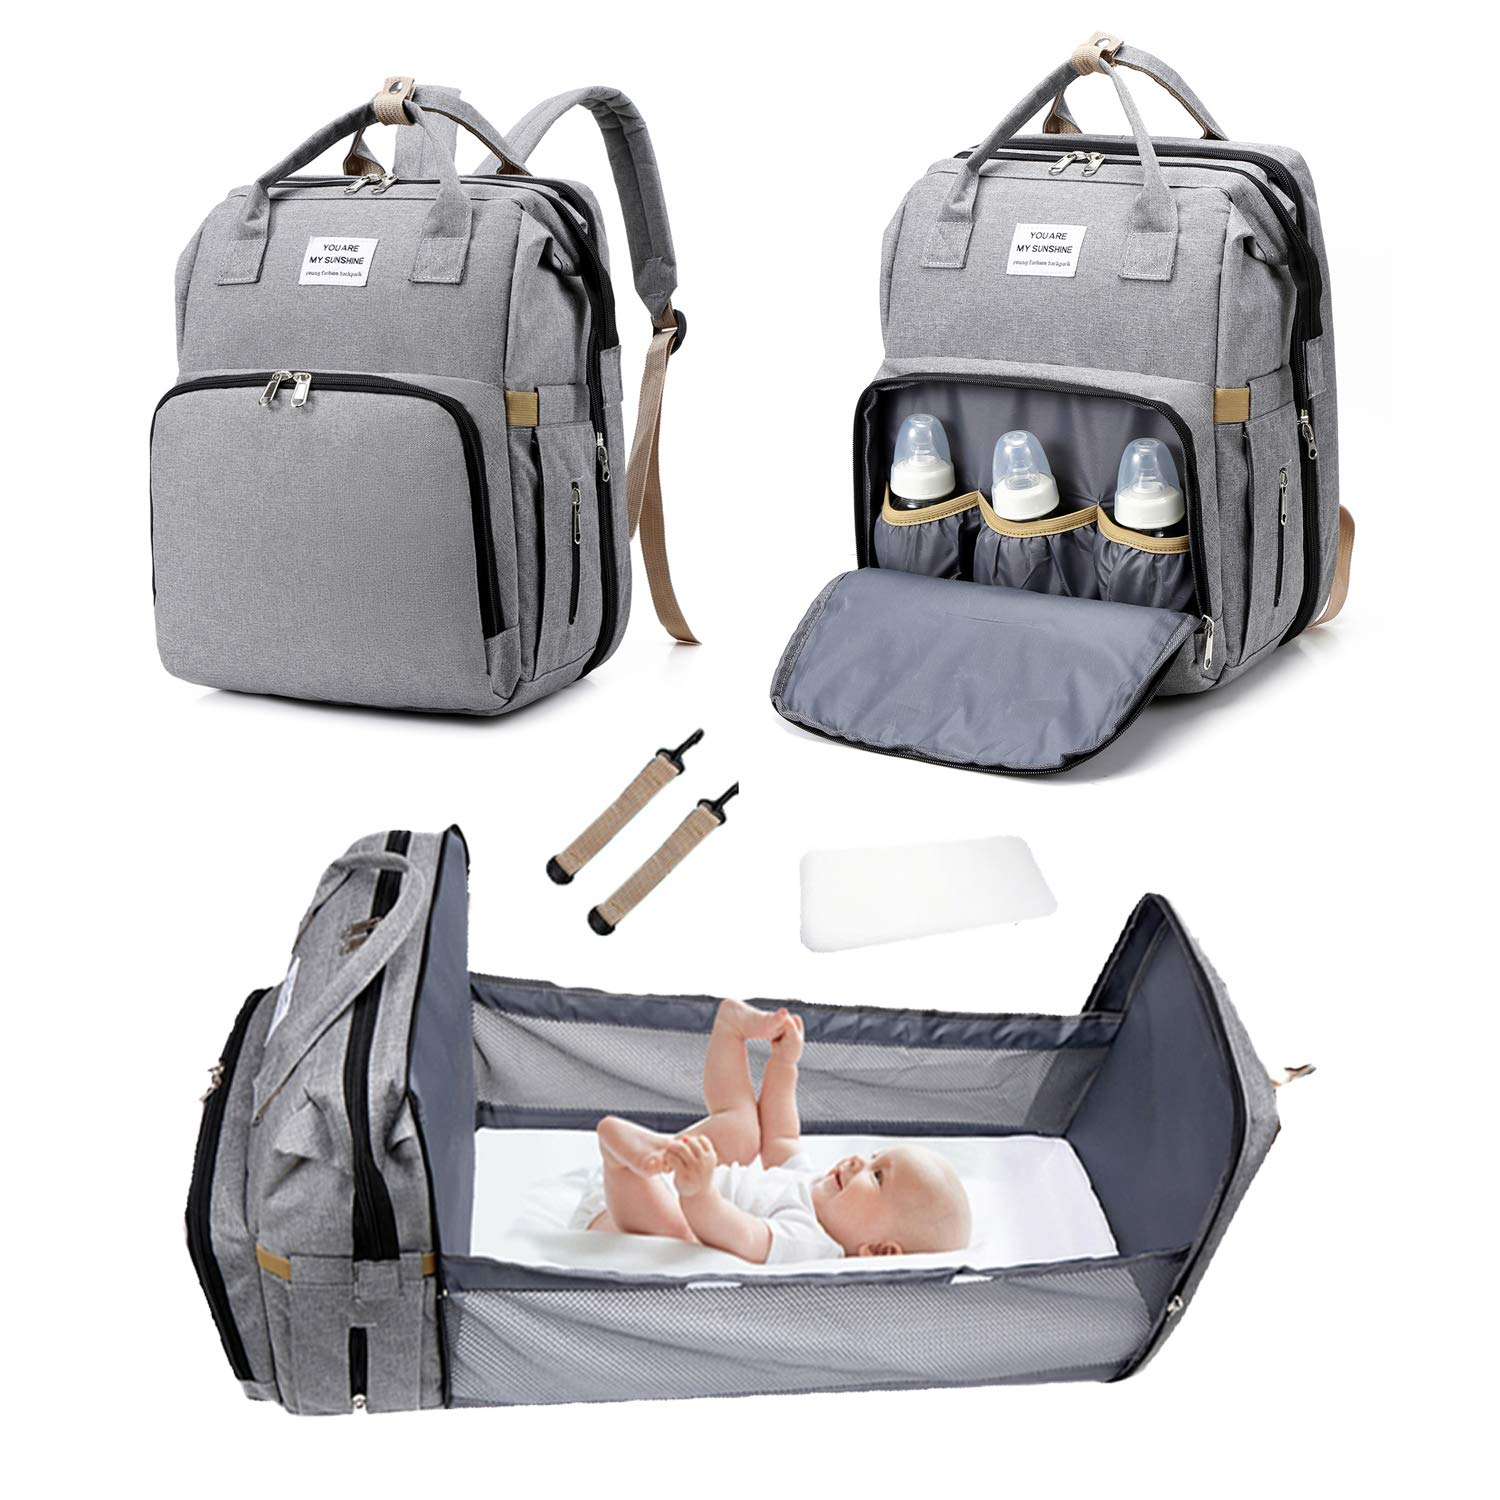 3 in 1 Travel Bassinet Foldable Baby Bed, Diaper Bag Backpack Changing Station, Baby Bag Portable Crib, Waterproof, Large Capacity, Stylish and Durable, Gray